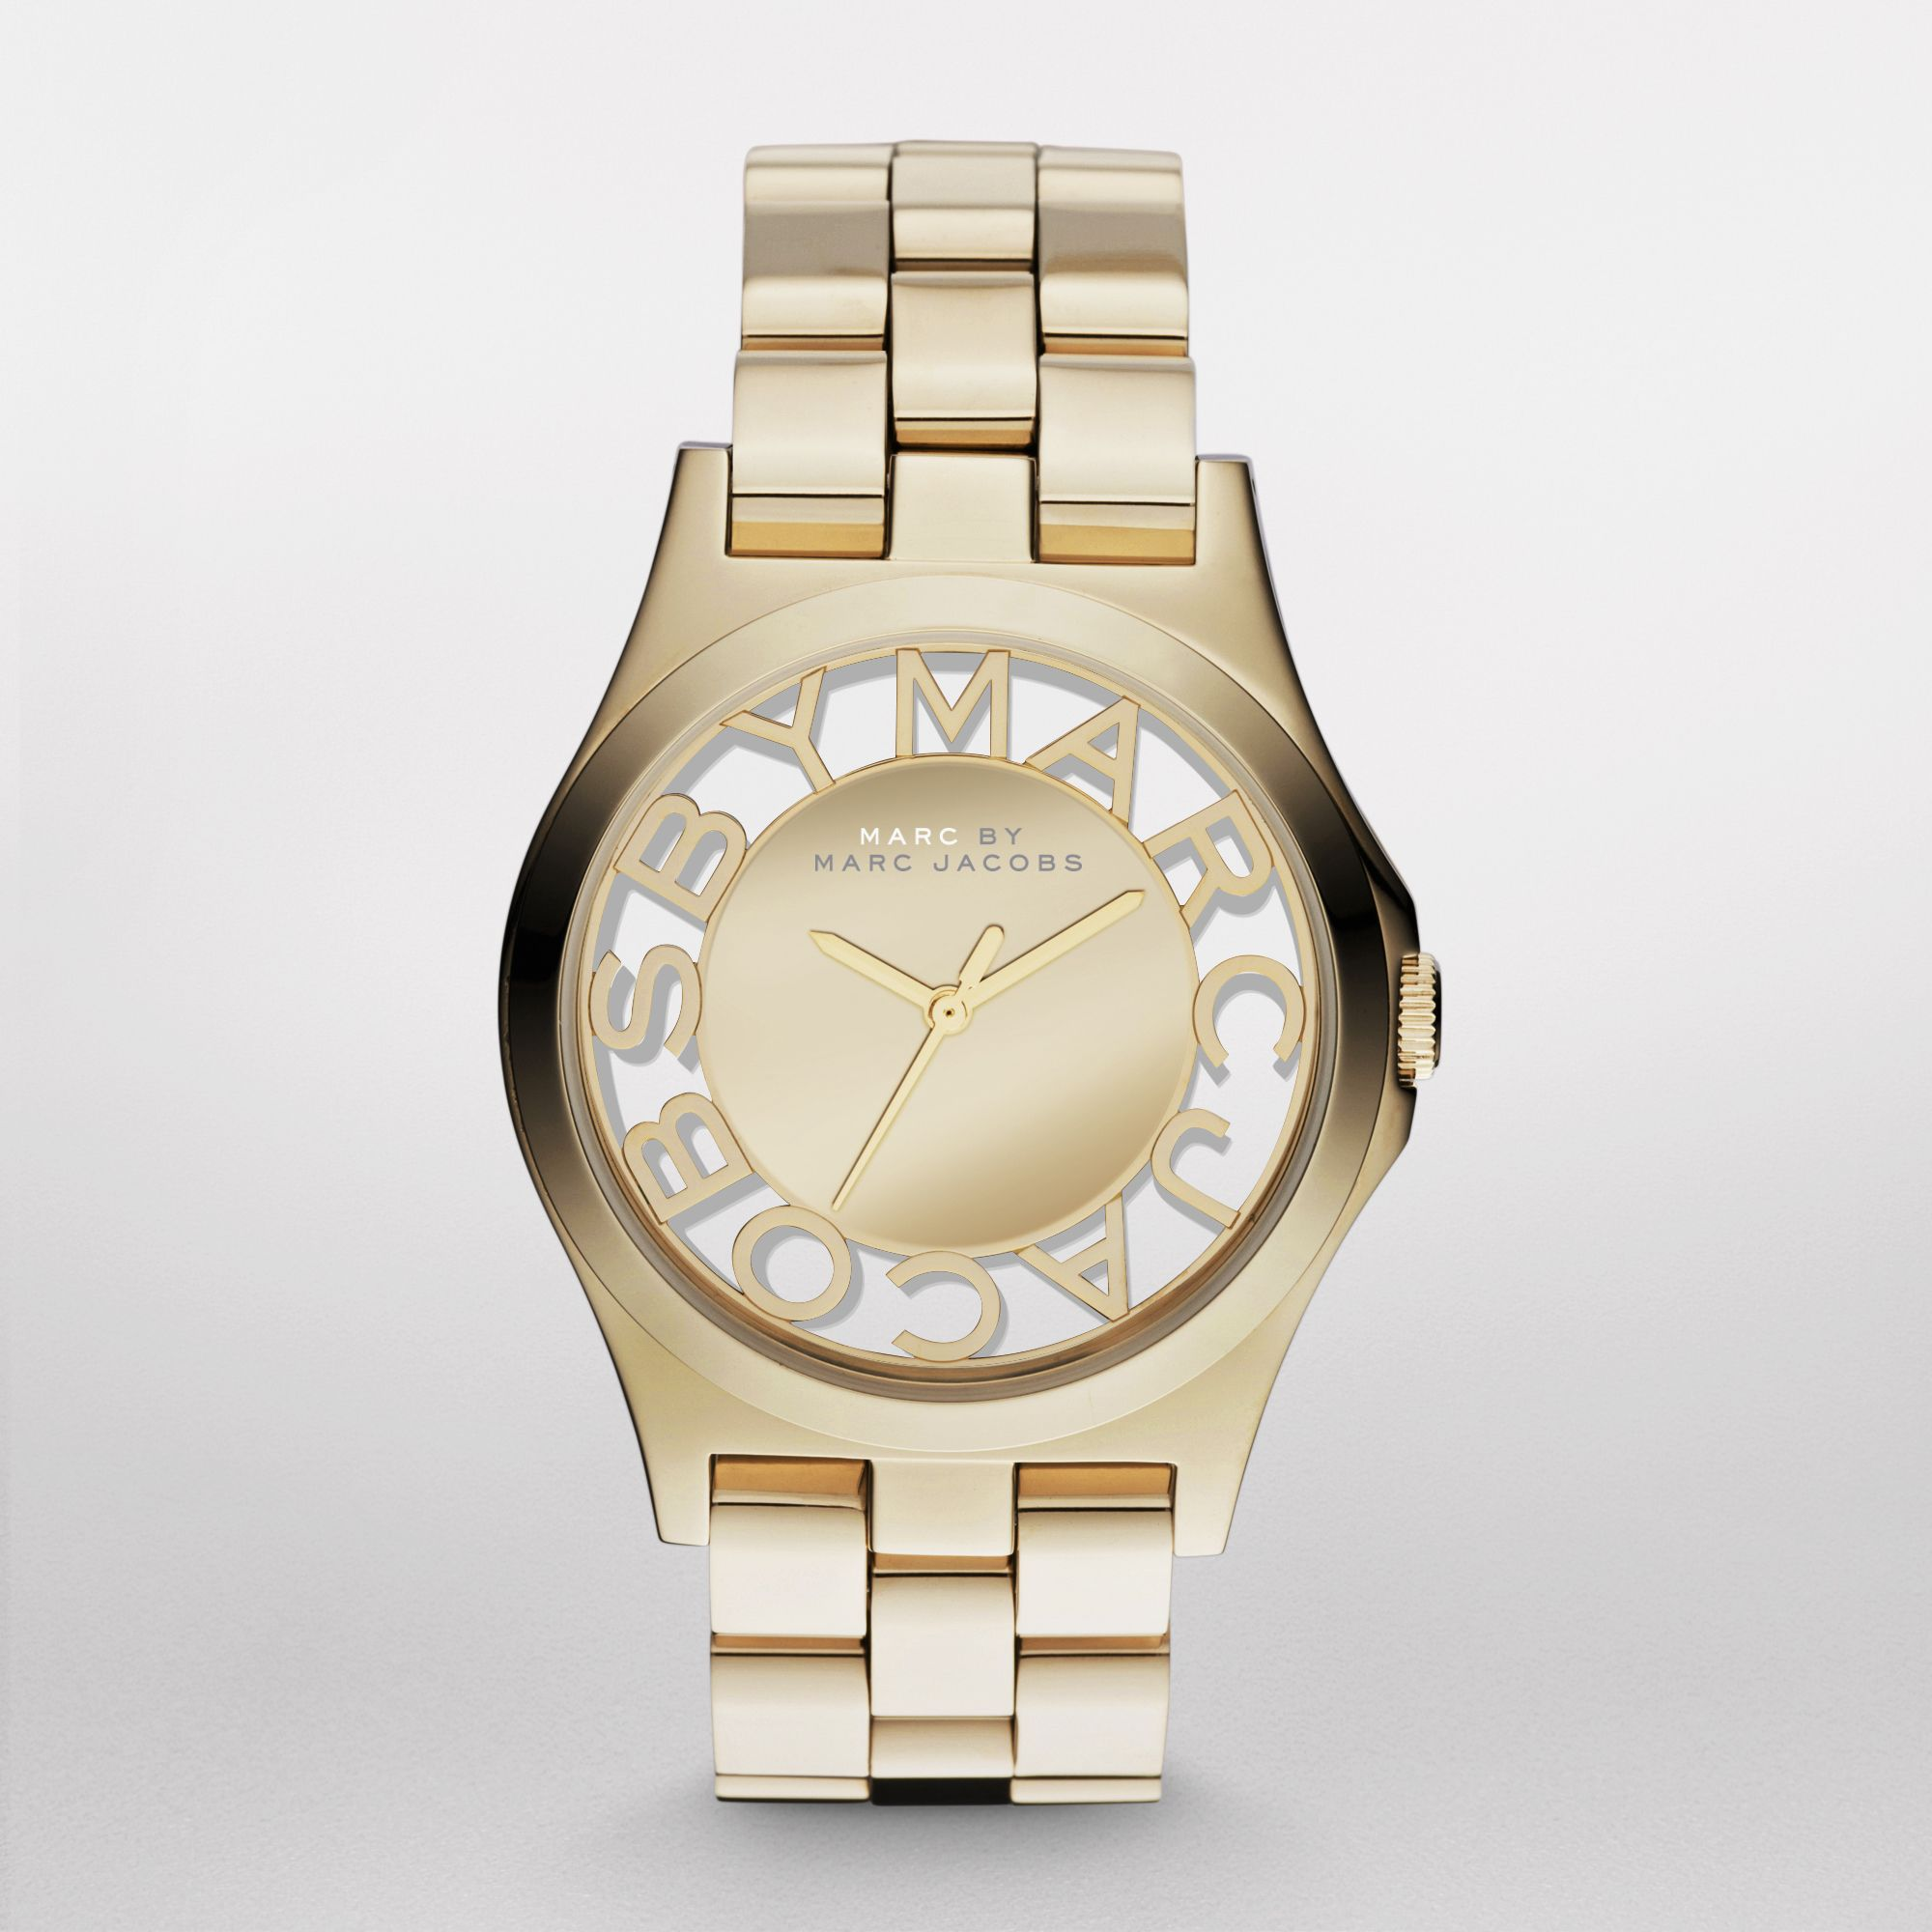 Mbm3206 skeleton ladies gold bracelet watch